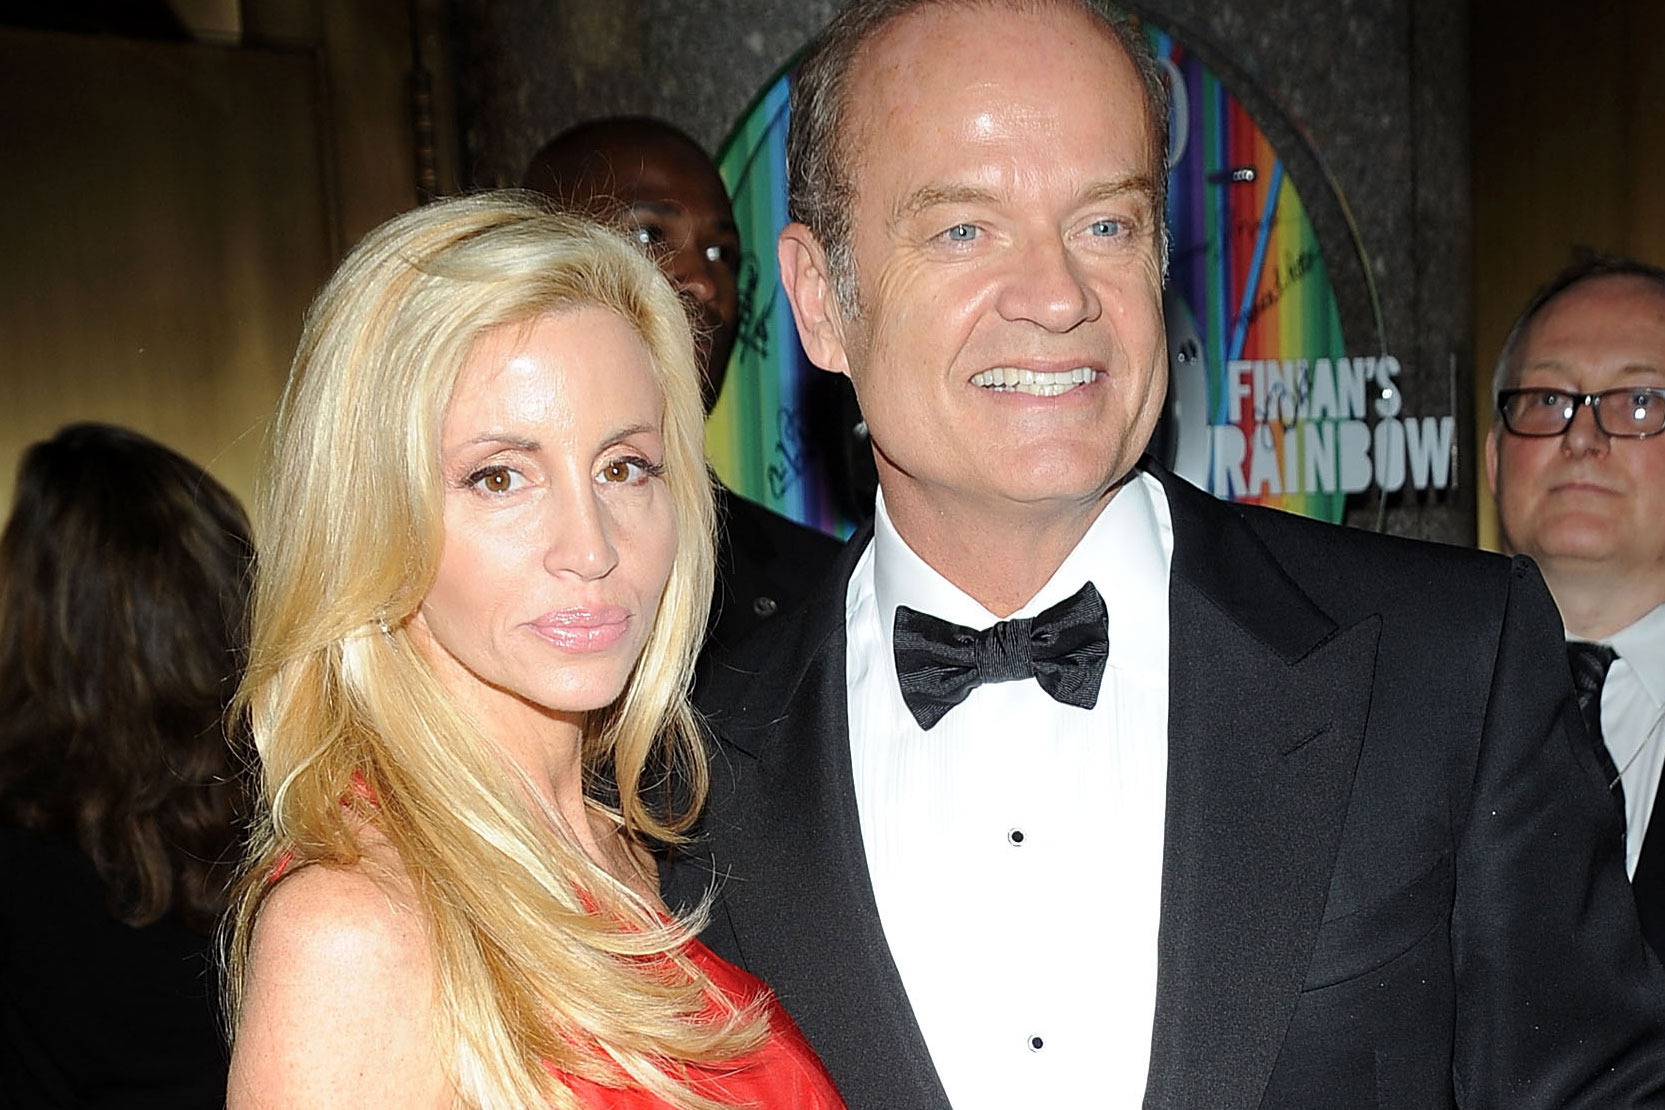 Camille Grammer Reveals the Solely Factor She Misses About Her Marriage to Kelsey Grammer | Bravo TV Official Web site